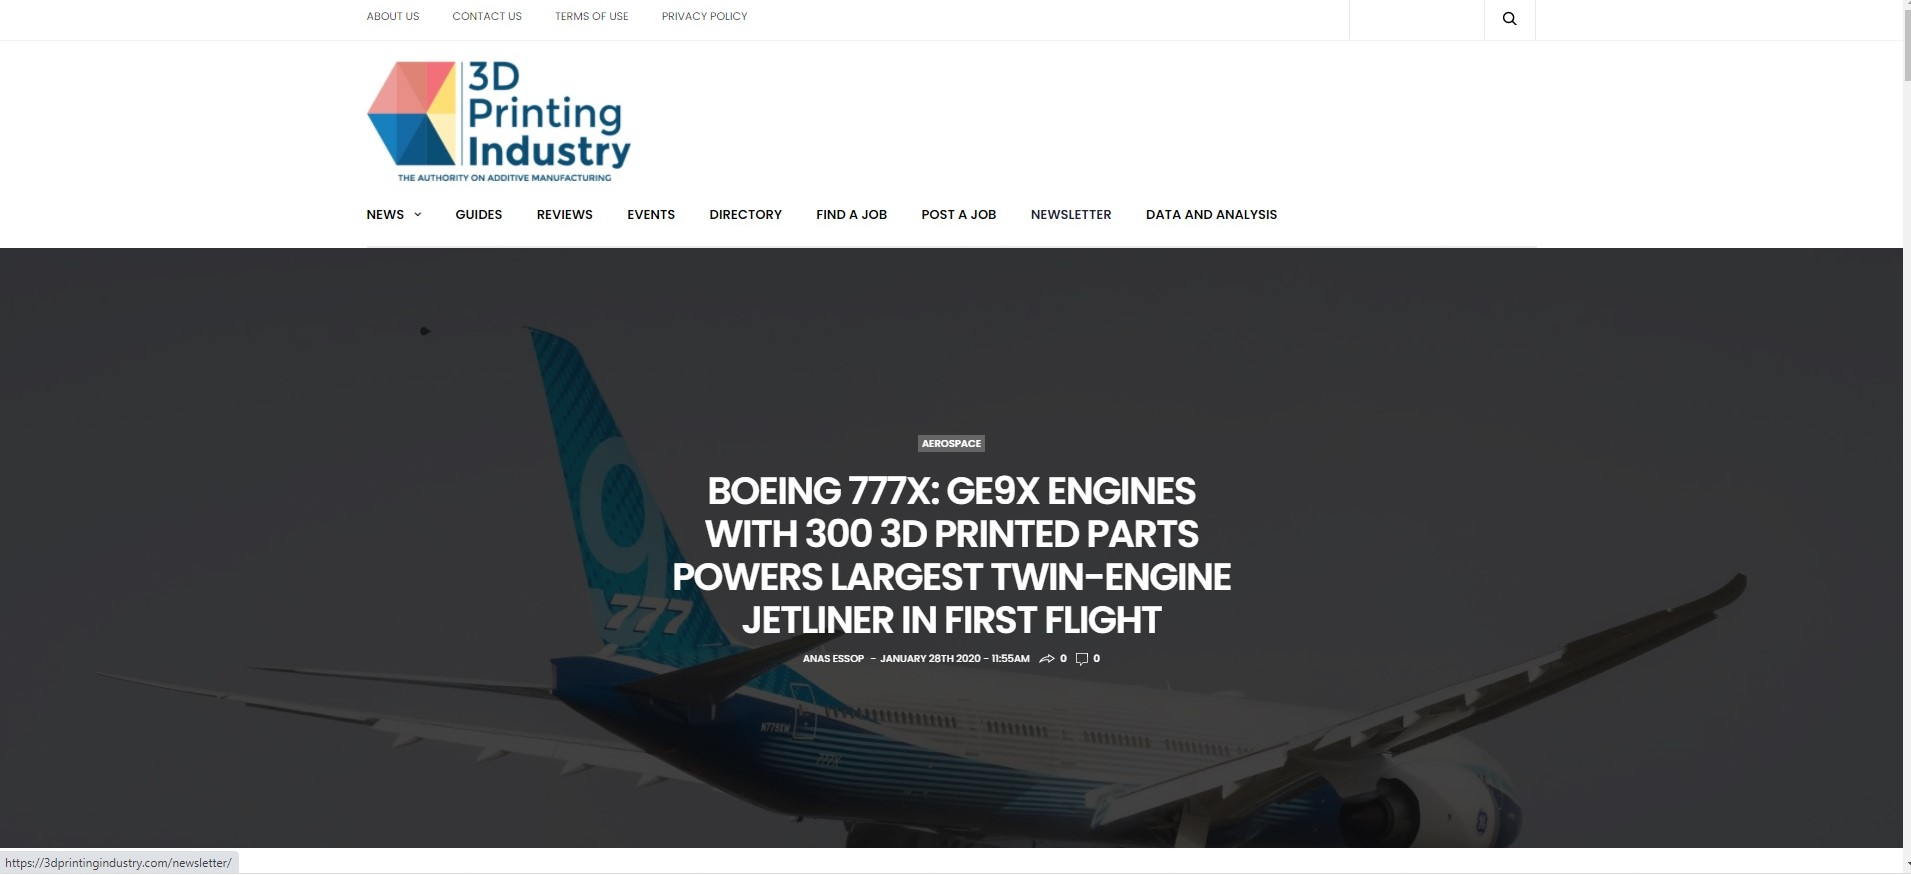 https://3dprintingindustry.com/news/boeing-77x-ge9x-engines-with-300-3d-printed-parts-powers-largest-twin-engine-jetliner-in-first-flight-167793/